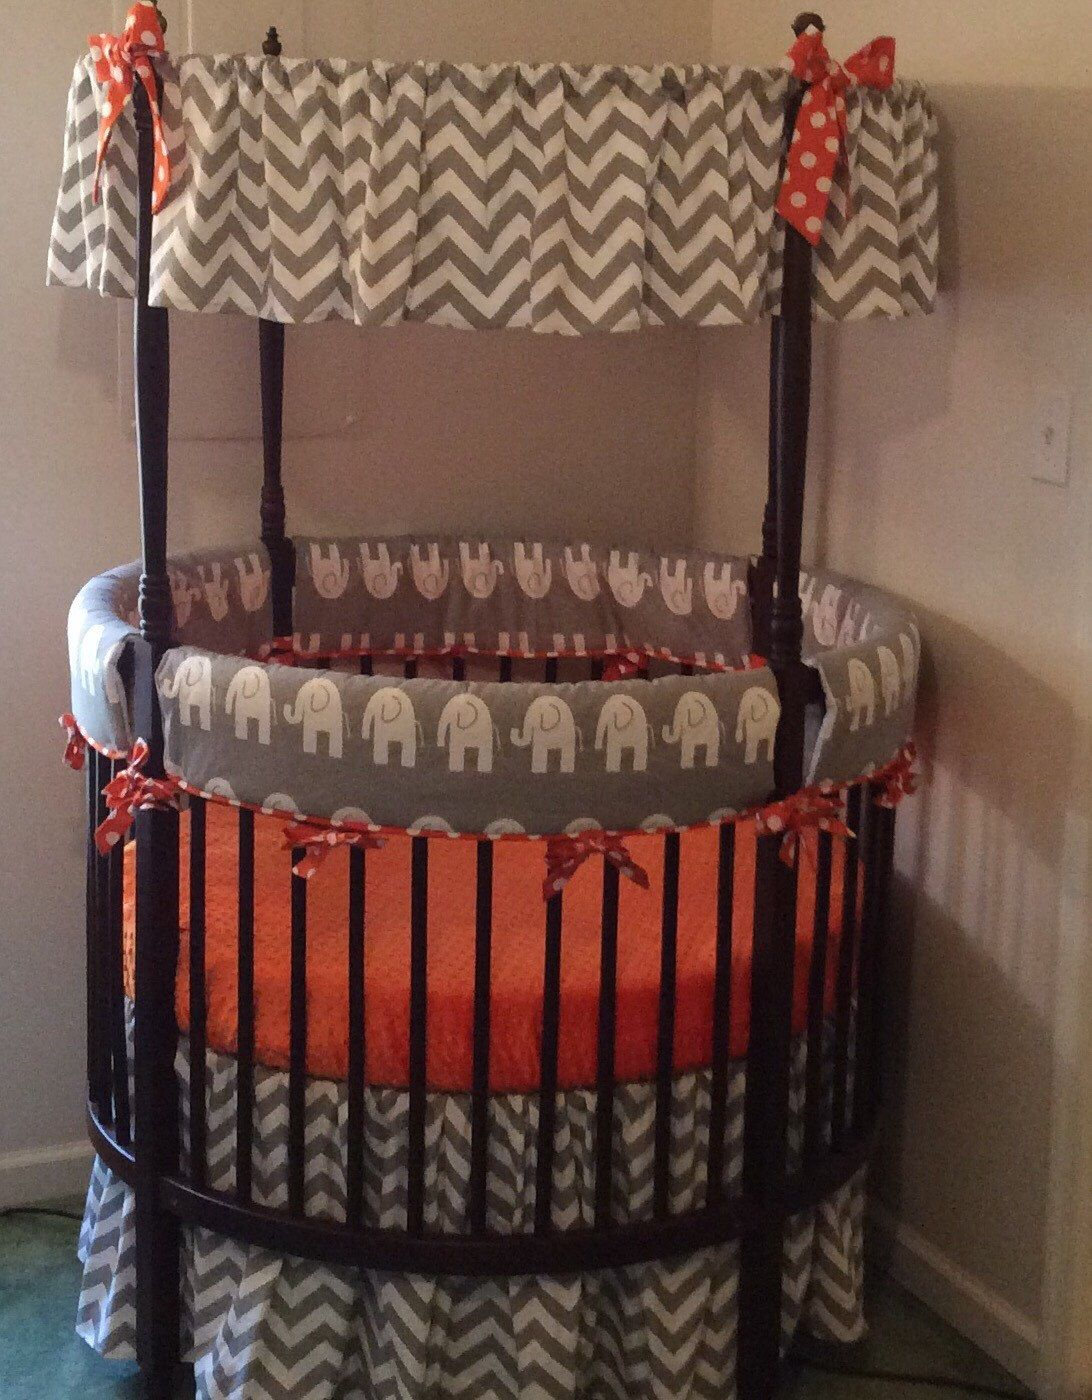 Crib bedding set gray white navy blue with by butterbeansboutique - Round Crib Bedding Set Orange And Gray By Butterbeansboutique On Etsy Https Www